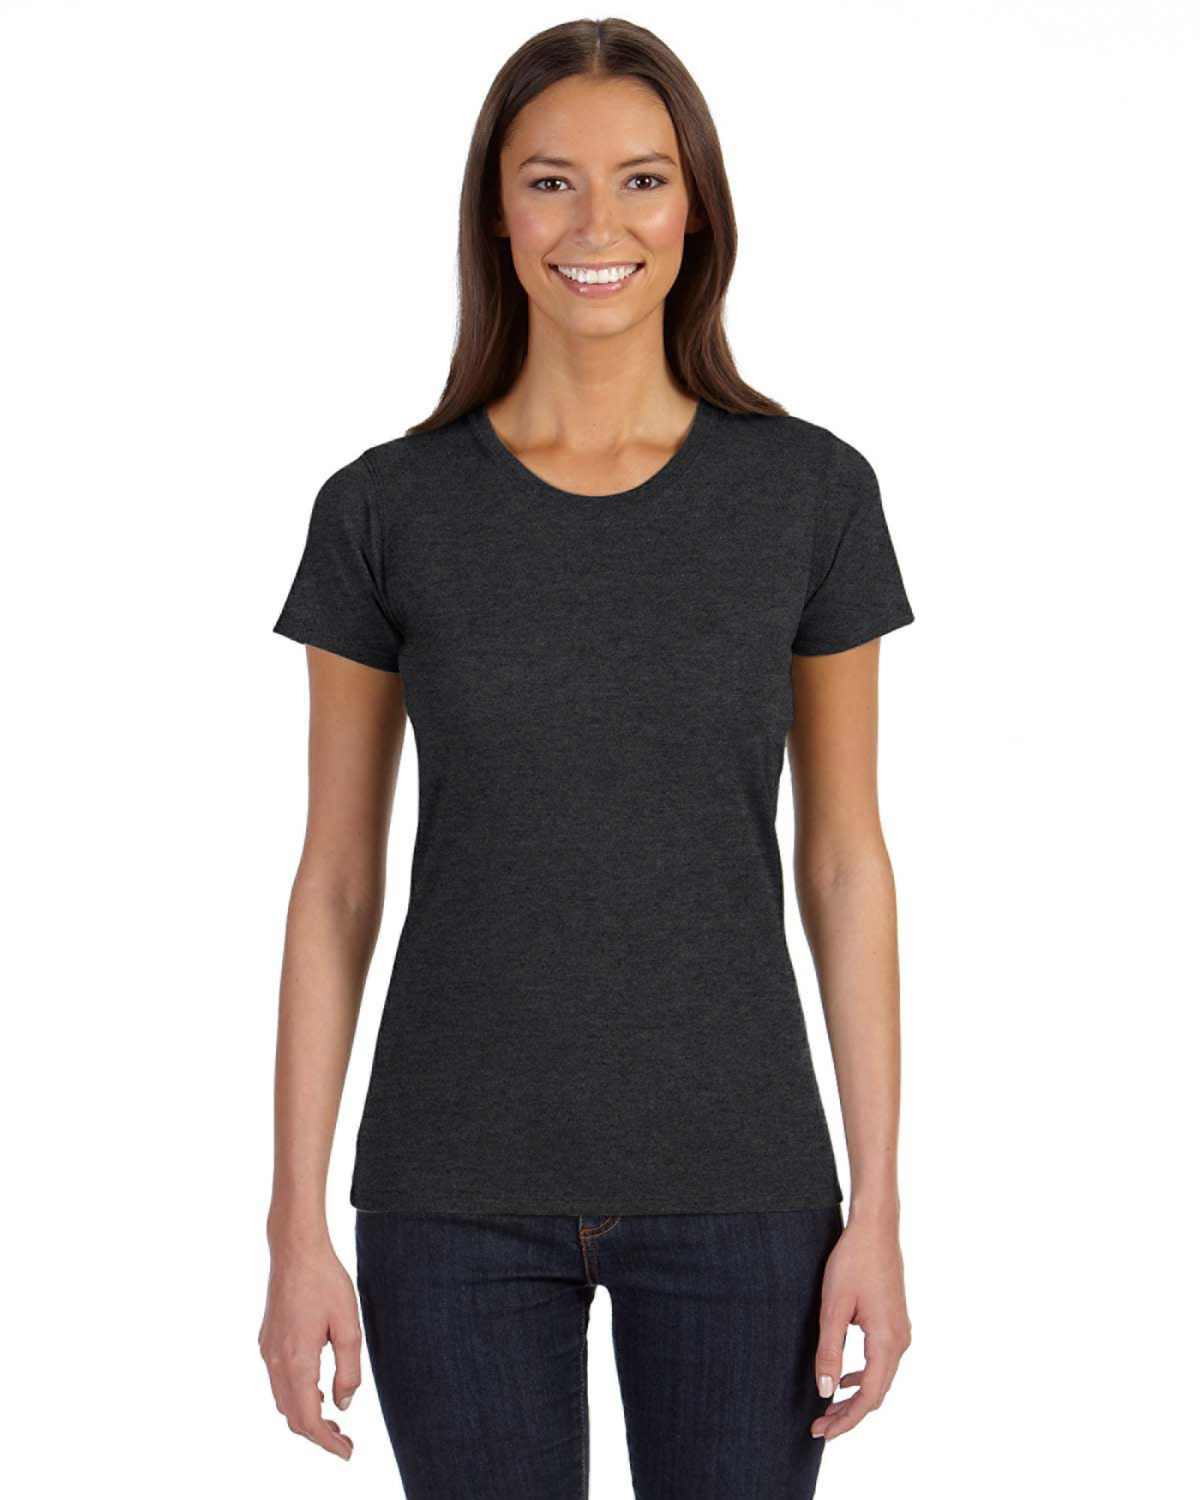 Ladies' 4.25 oz. Blended Eco T-Shirt